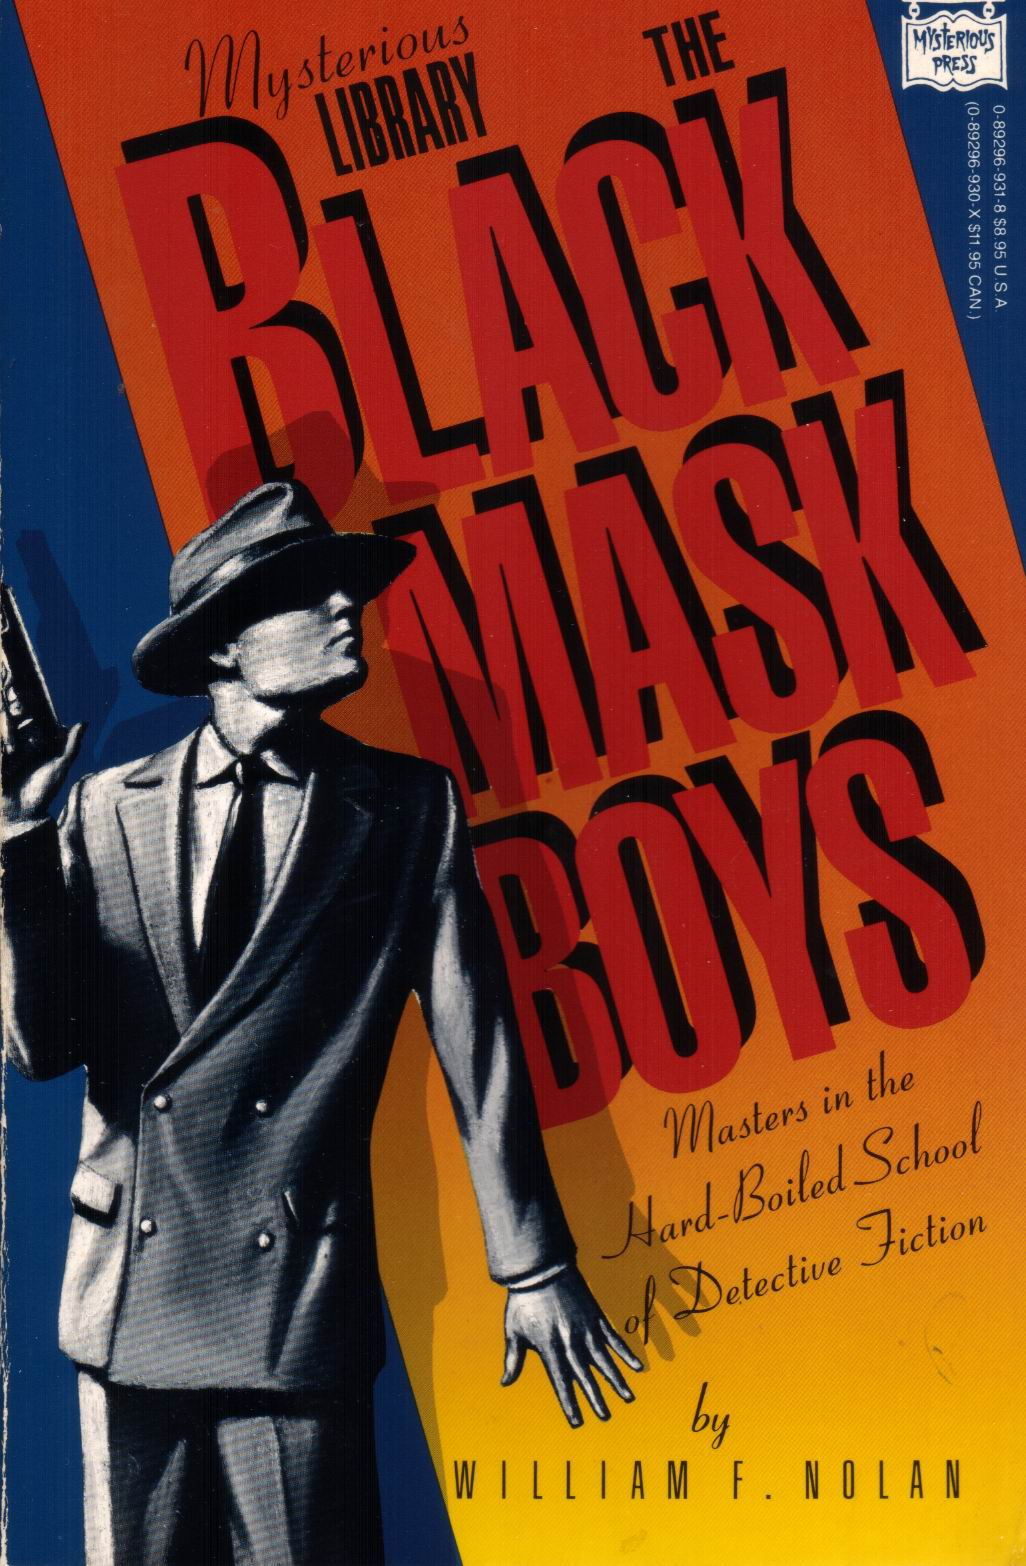 Black Boy Book Cover ~ Pulp fiction books to the ceiling